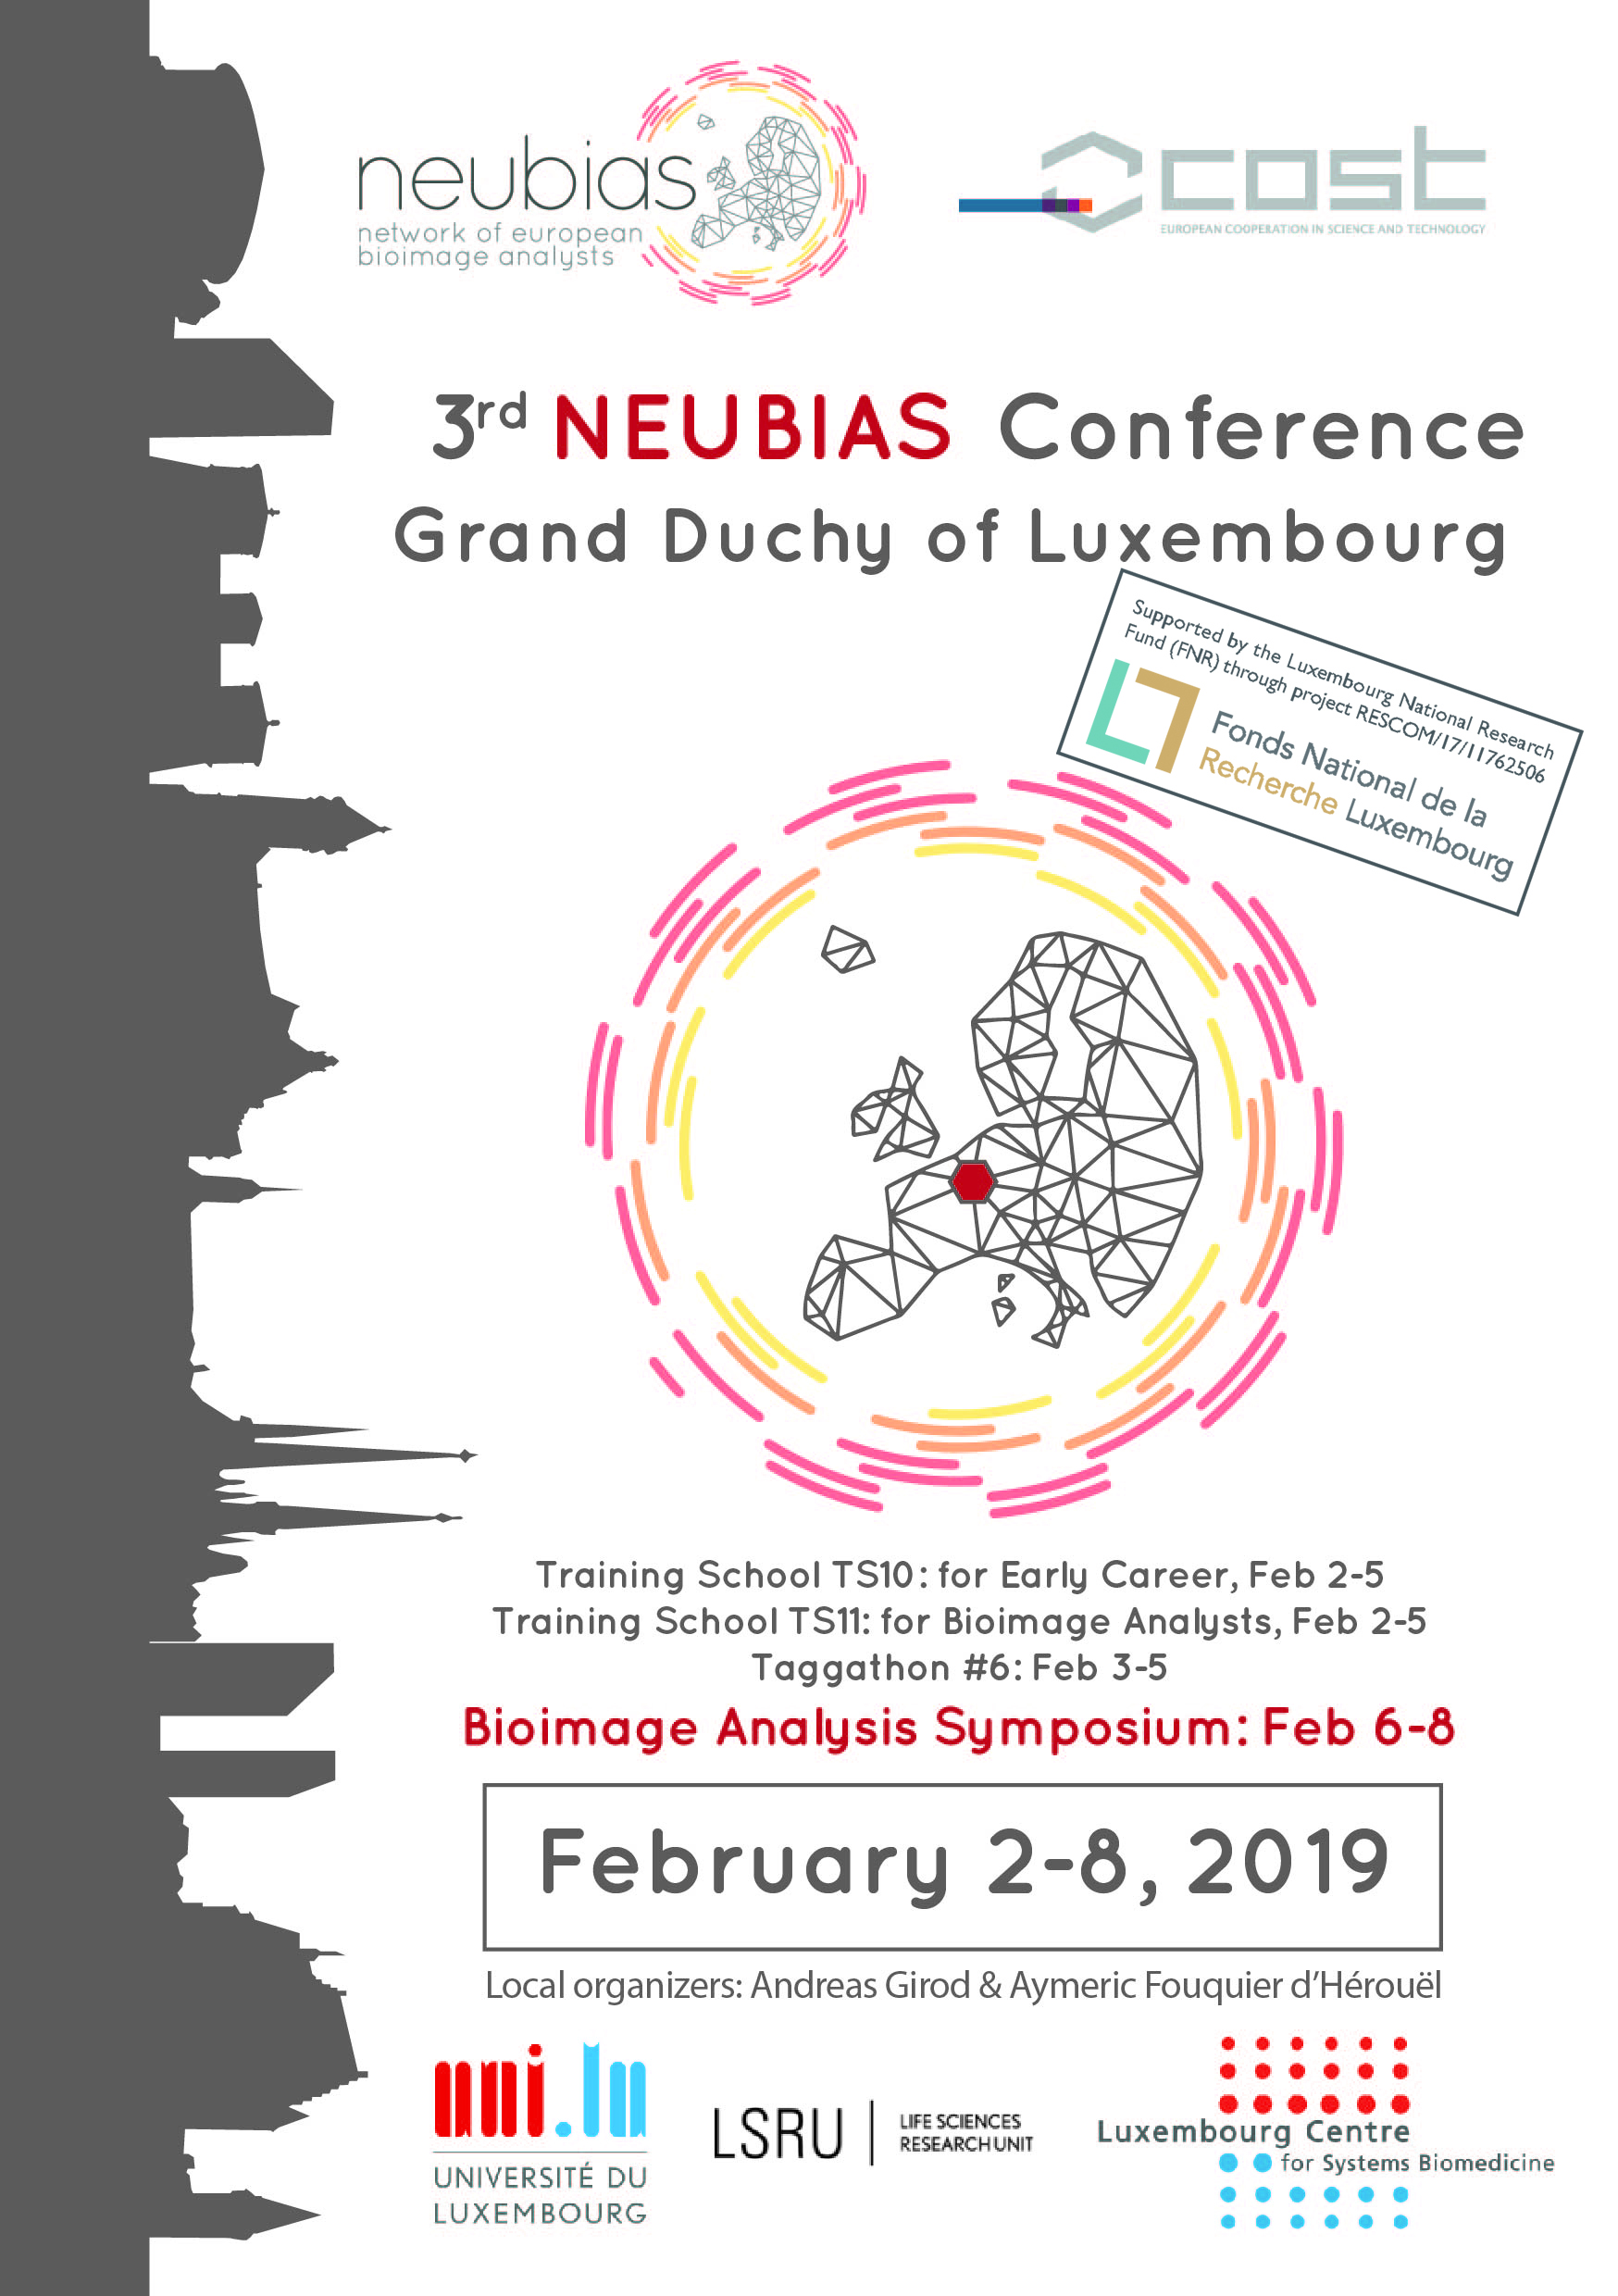 TS11 Luxembourg 2019 - NEUBIAS: Network of BioImage Analysts